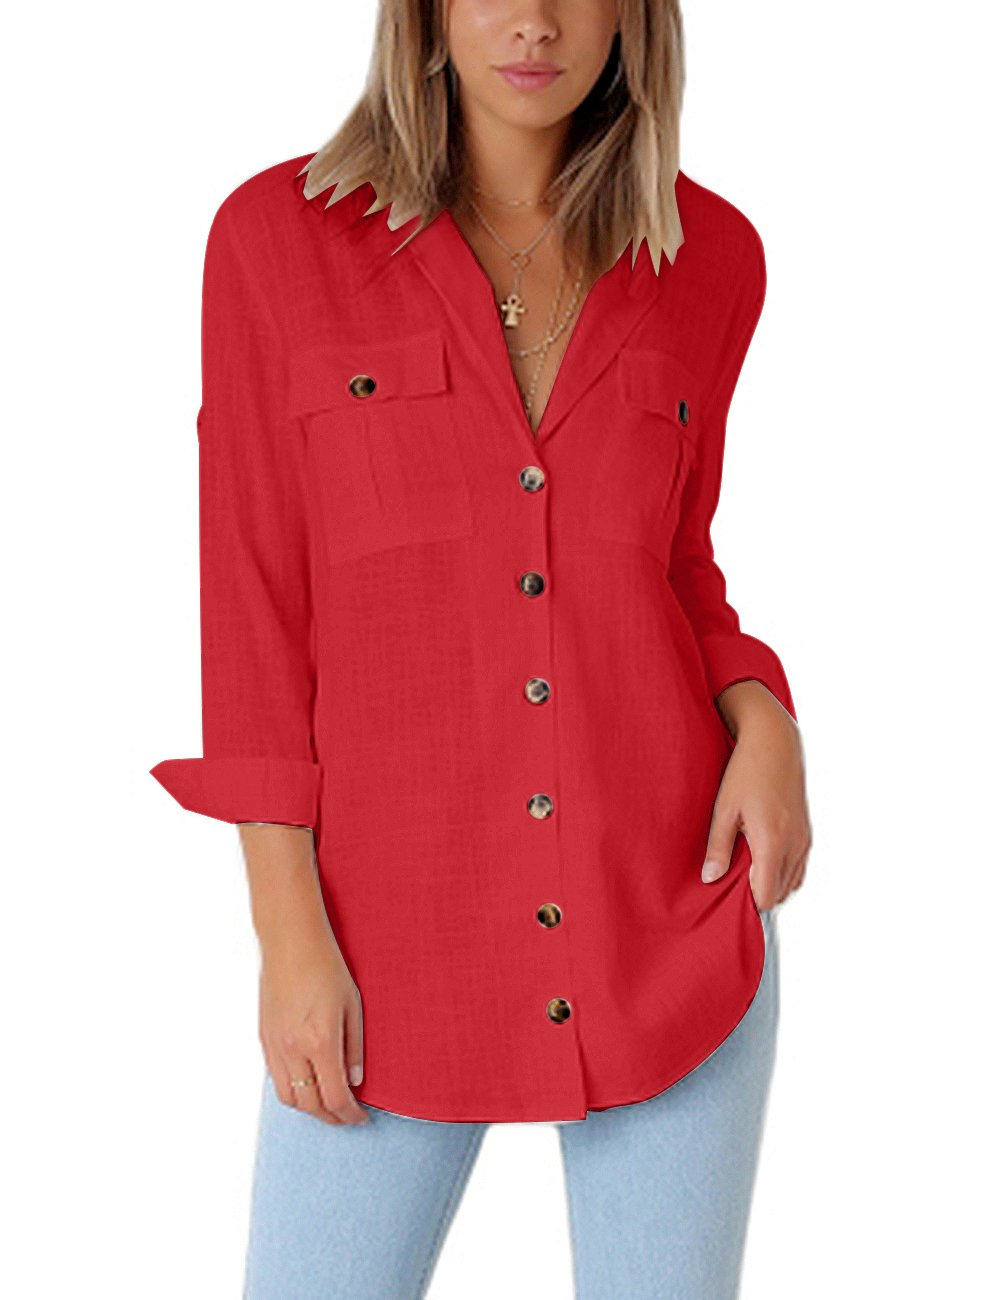 GRAPENT Women's Casual Loose Roll-up Sleeve Blouse Pocket Button Down Shirts Tops Red XL(US 16-18)